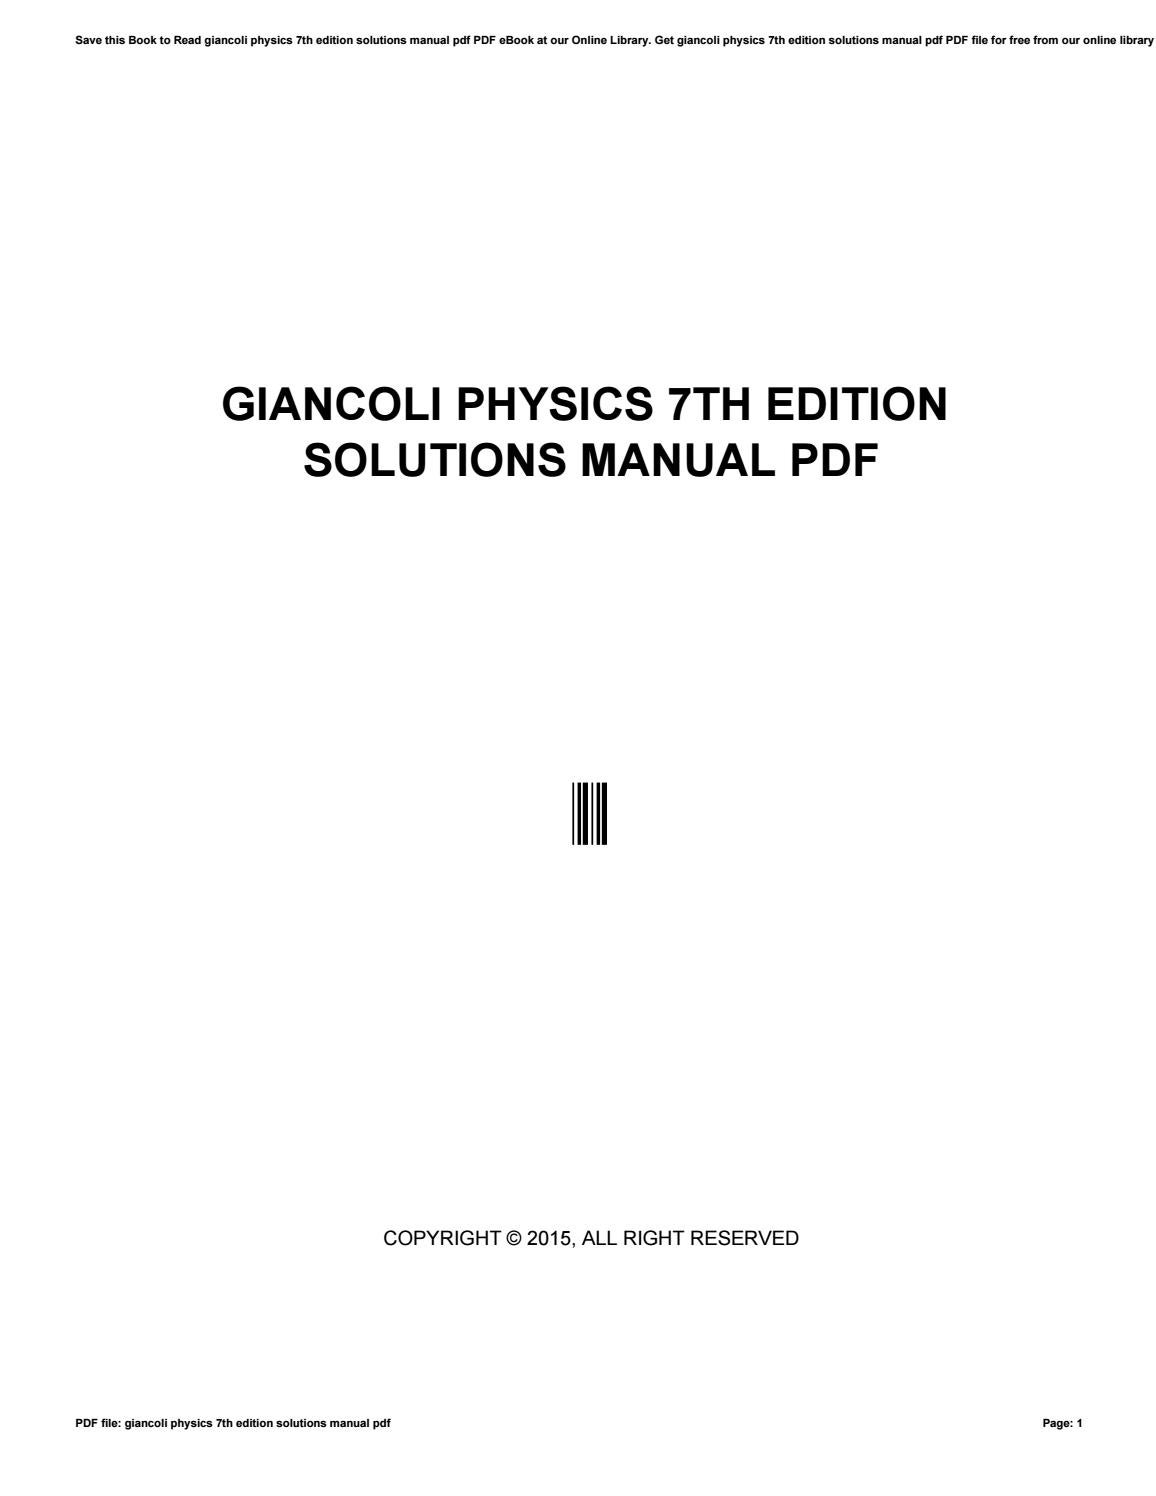 Giancoli Physics 7th Edition Solutions Manual Pdf By O7976 Issuu